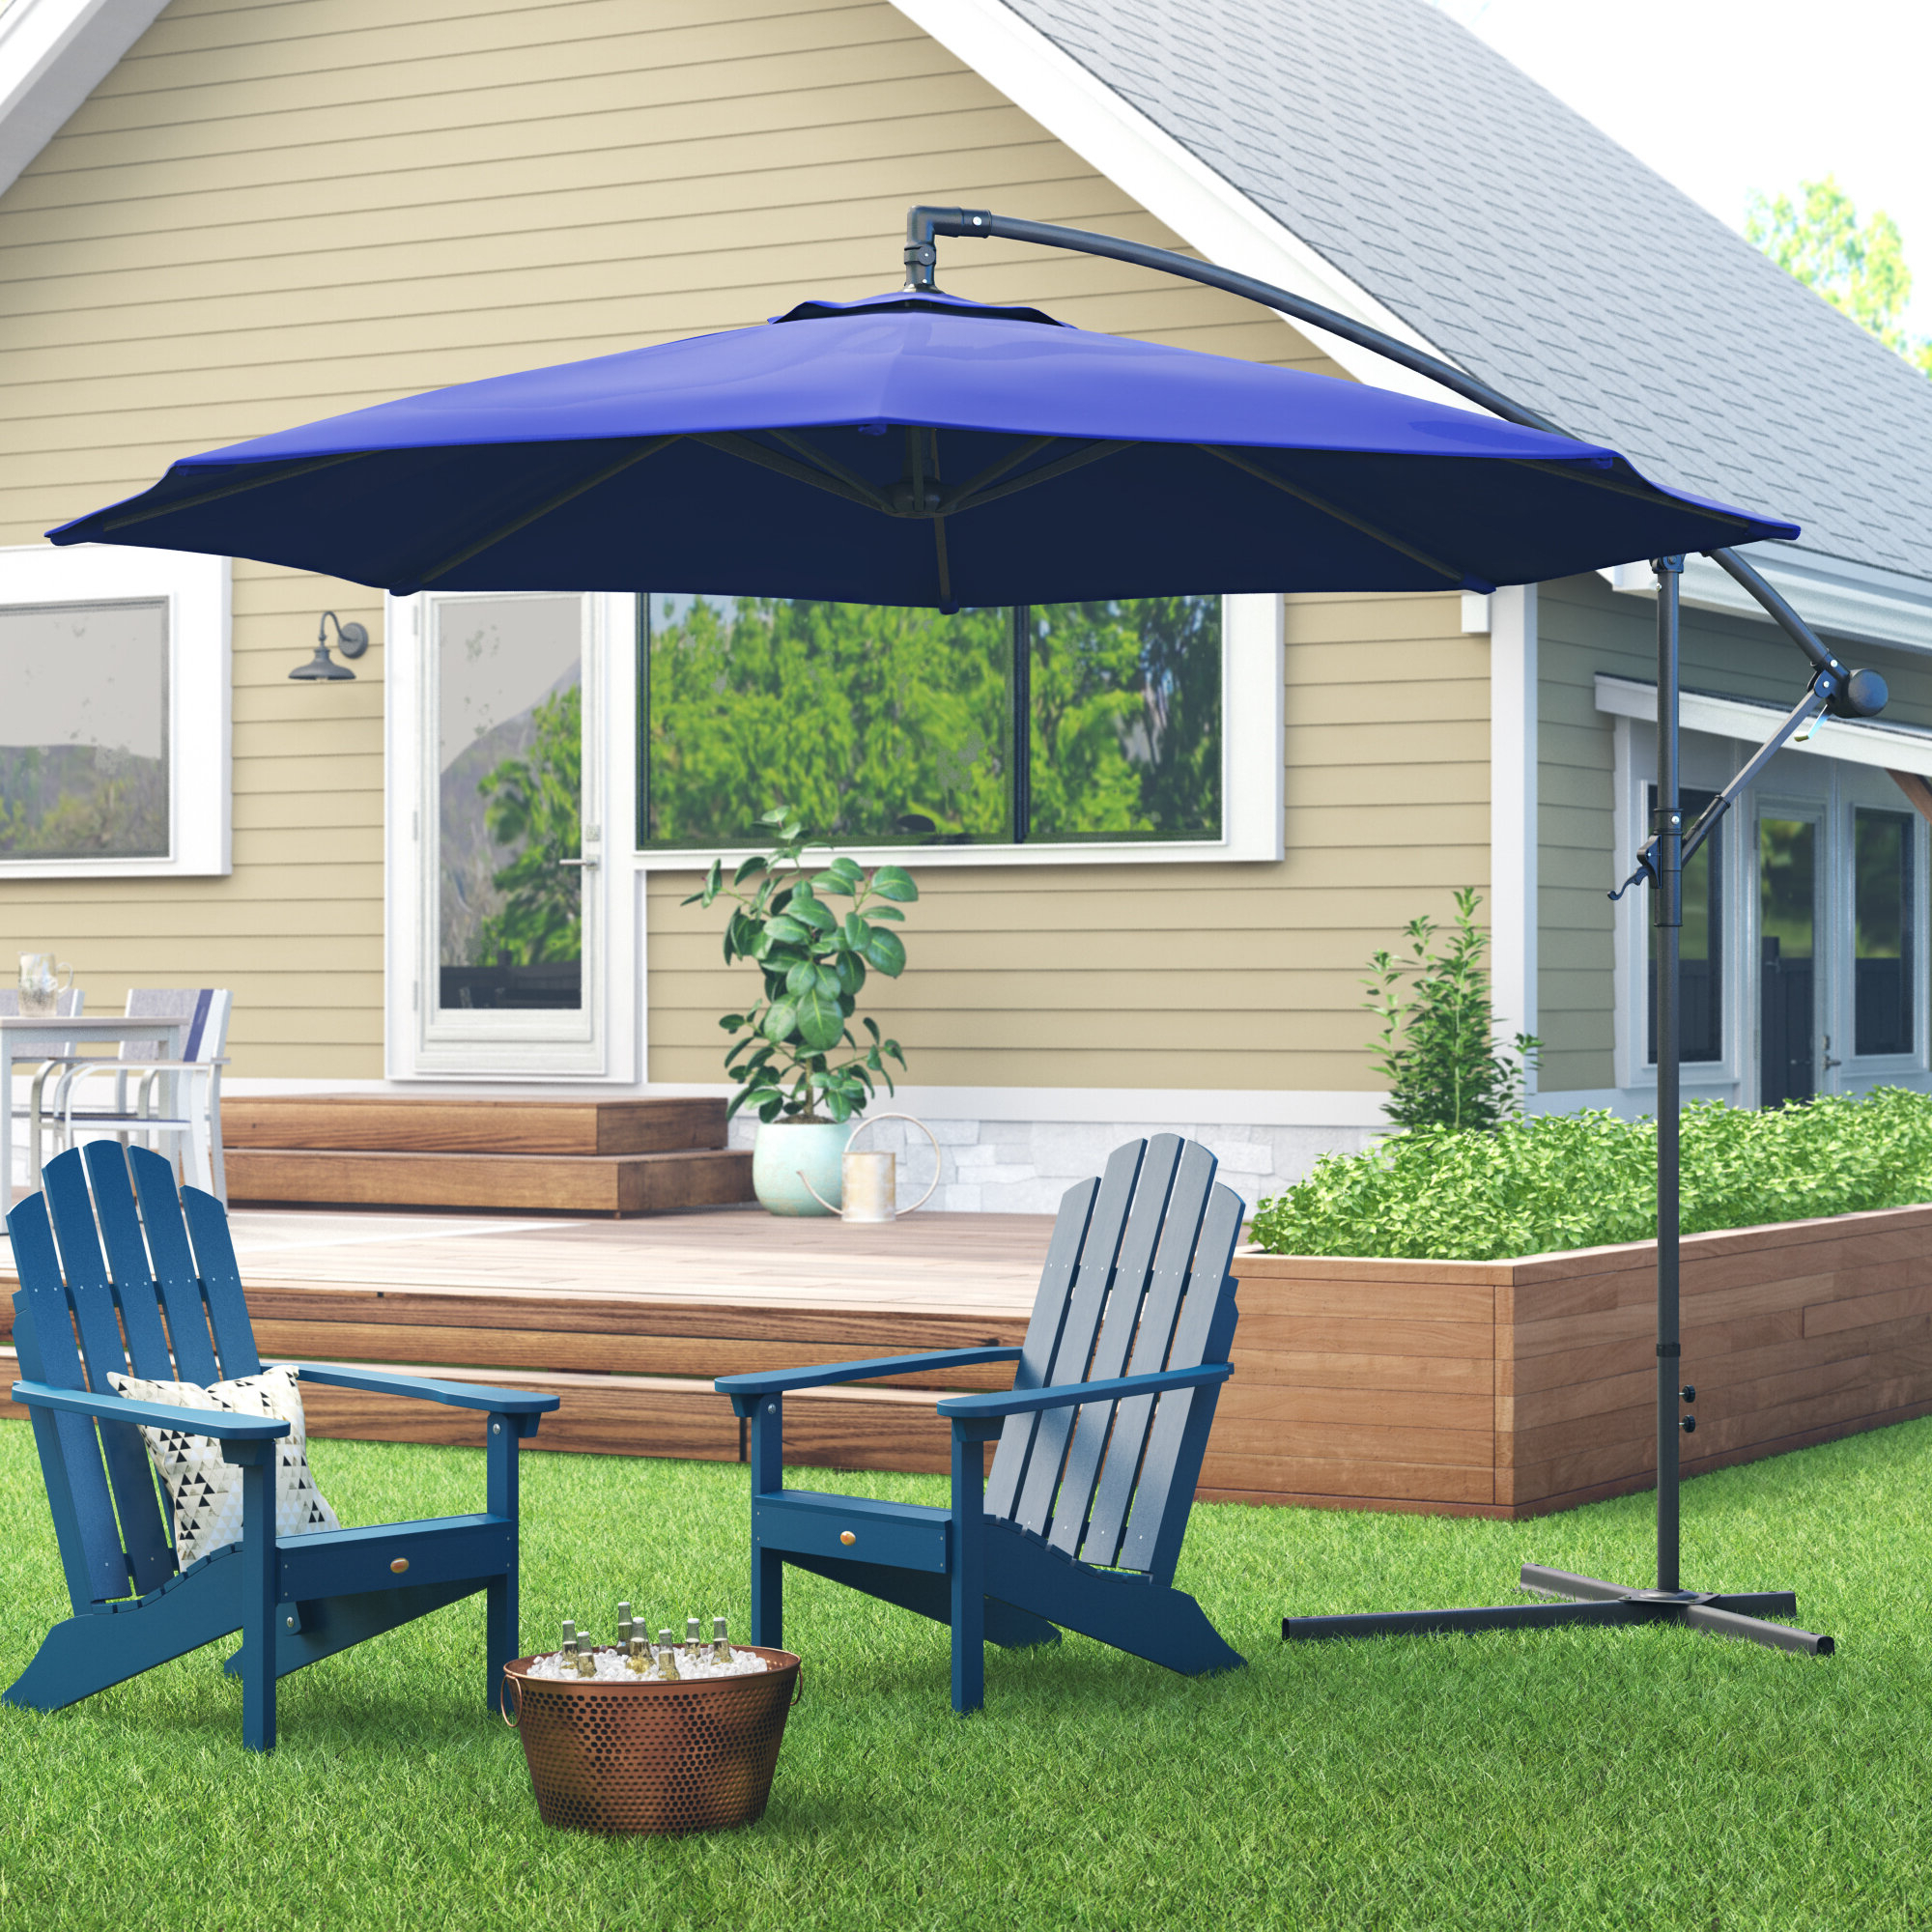 Trotman 10' Cantilever Umbrella Intended For Well Liked Vassalboro Cantilever Umbrellas (View 20 of 20)